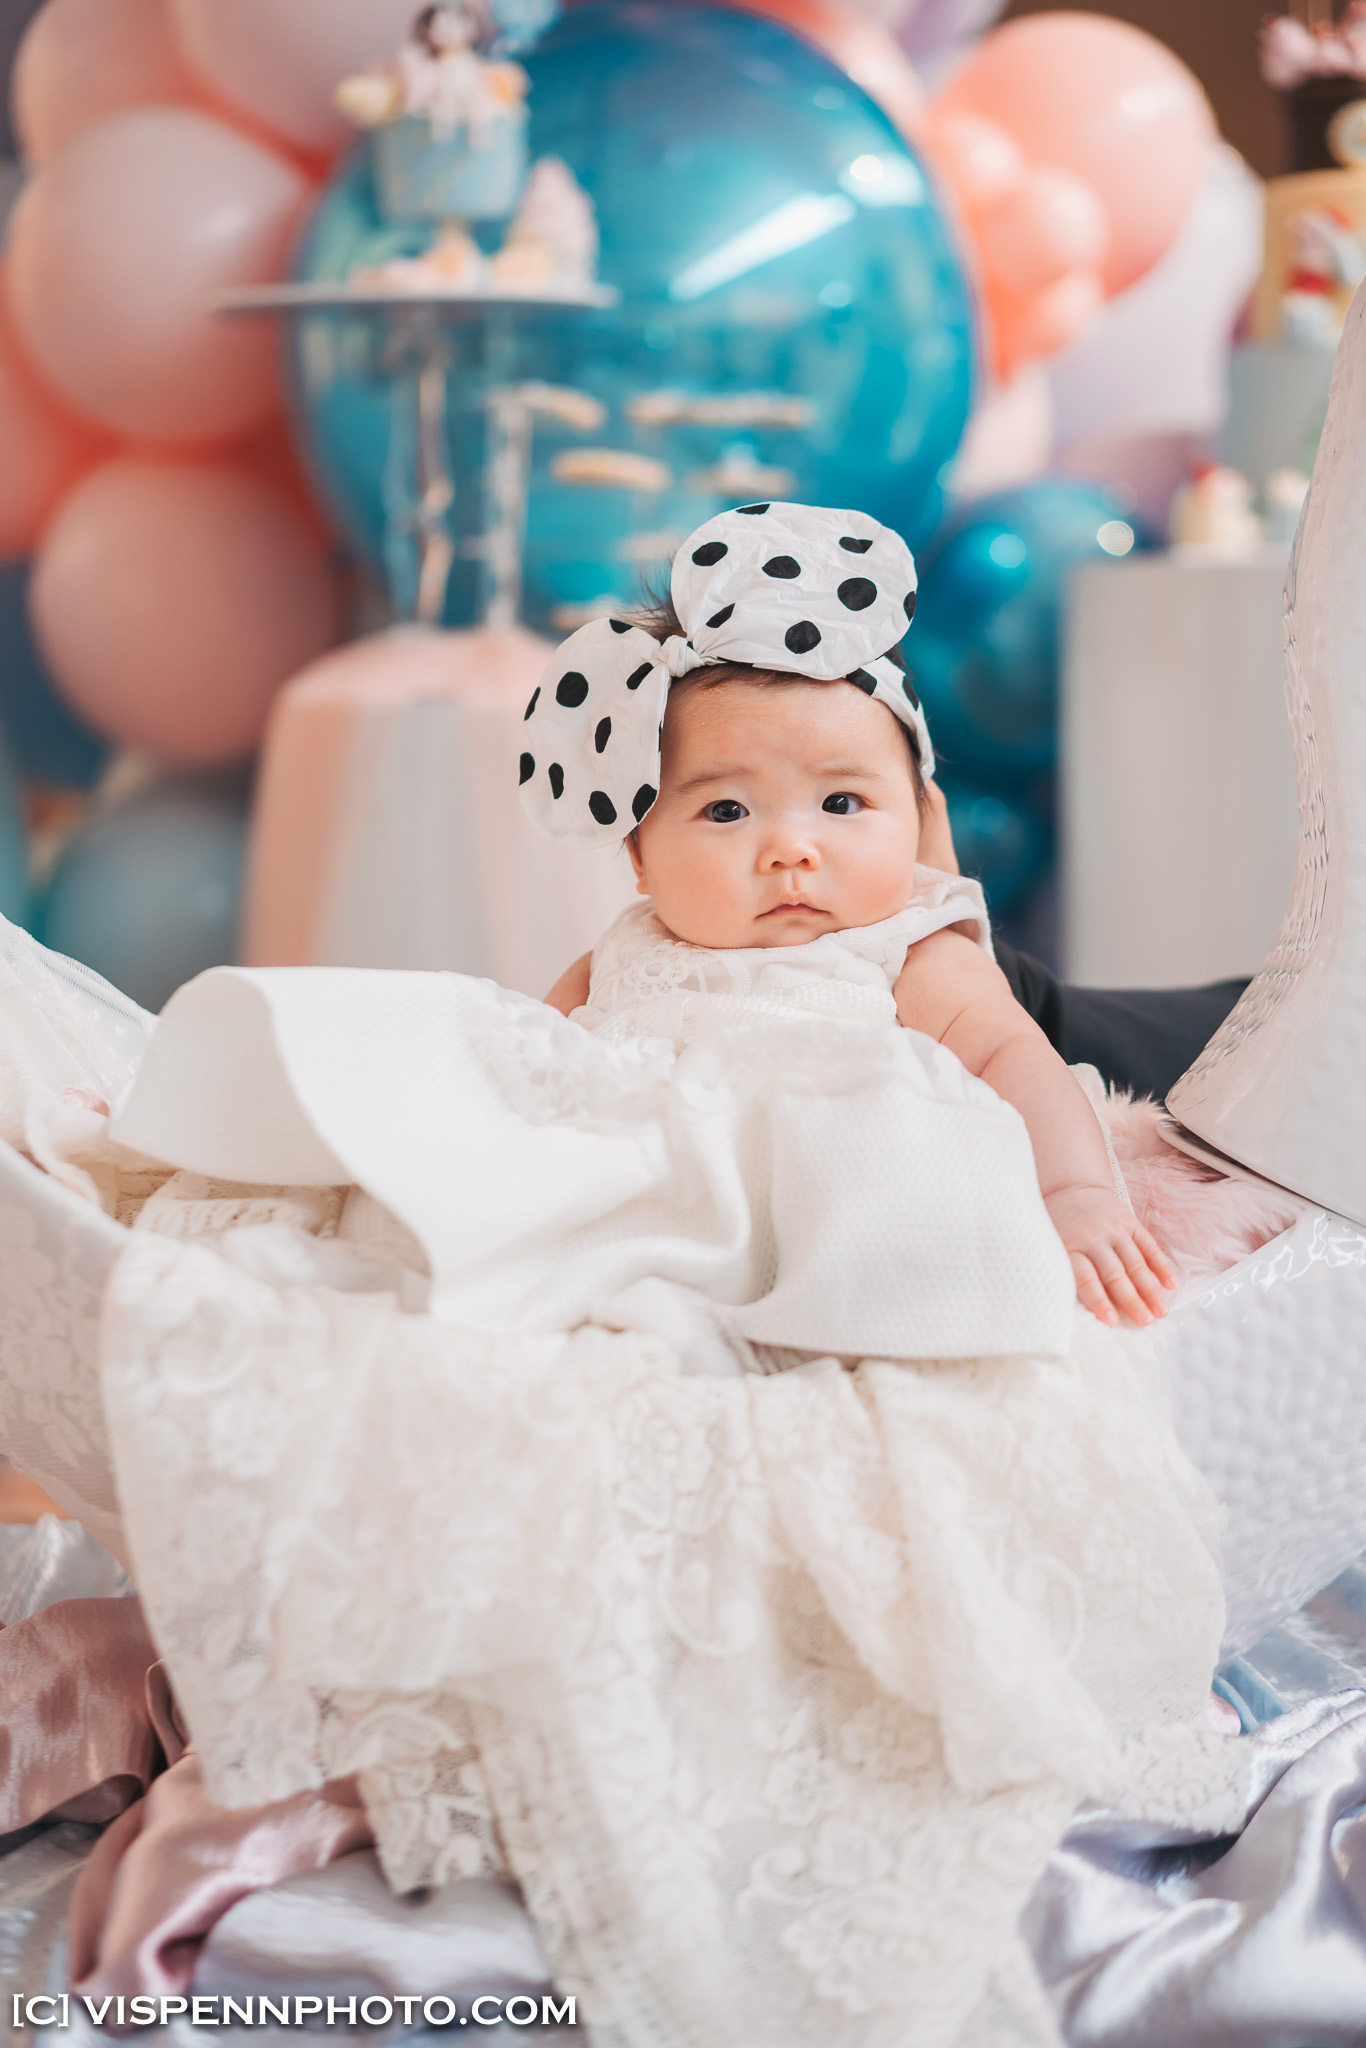 Melbourne Baby Family Birthday Party Photographer 墨尔本 百日宴 满月宴 周岁宴 摄影 VISPENN 100 Days 1253 Sony VISPENN